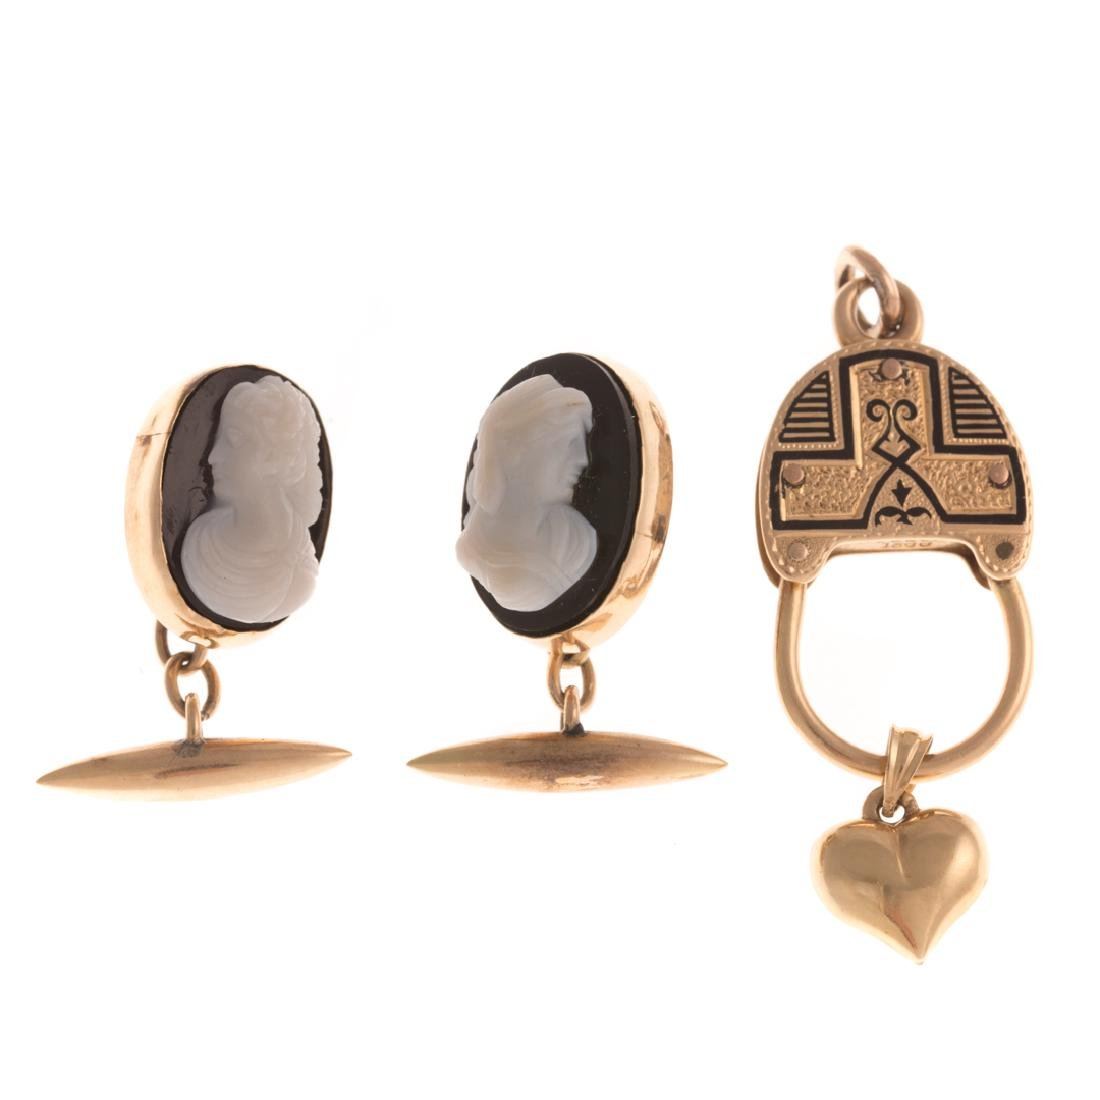 A Victorian Pendant with Cameo Cufflinks in 14K